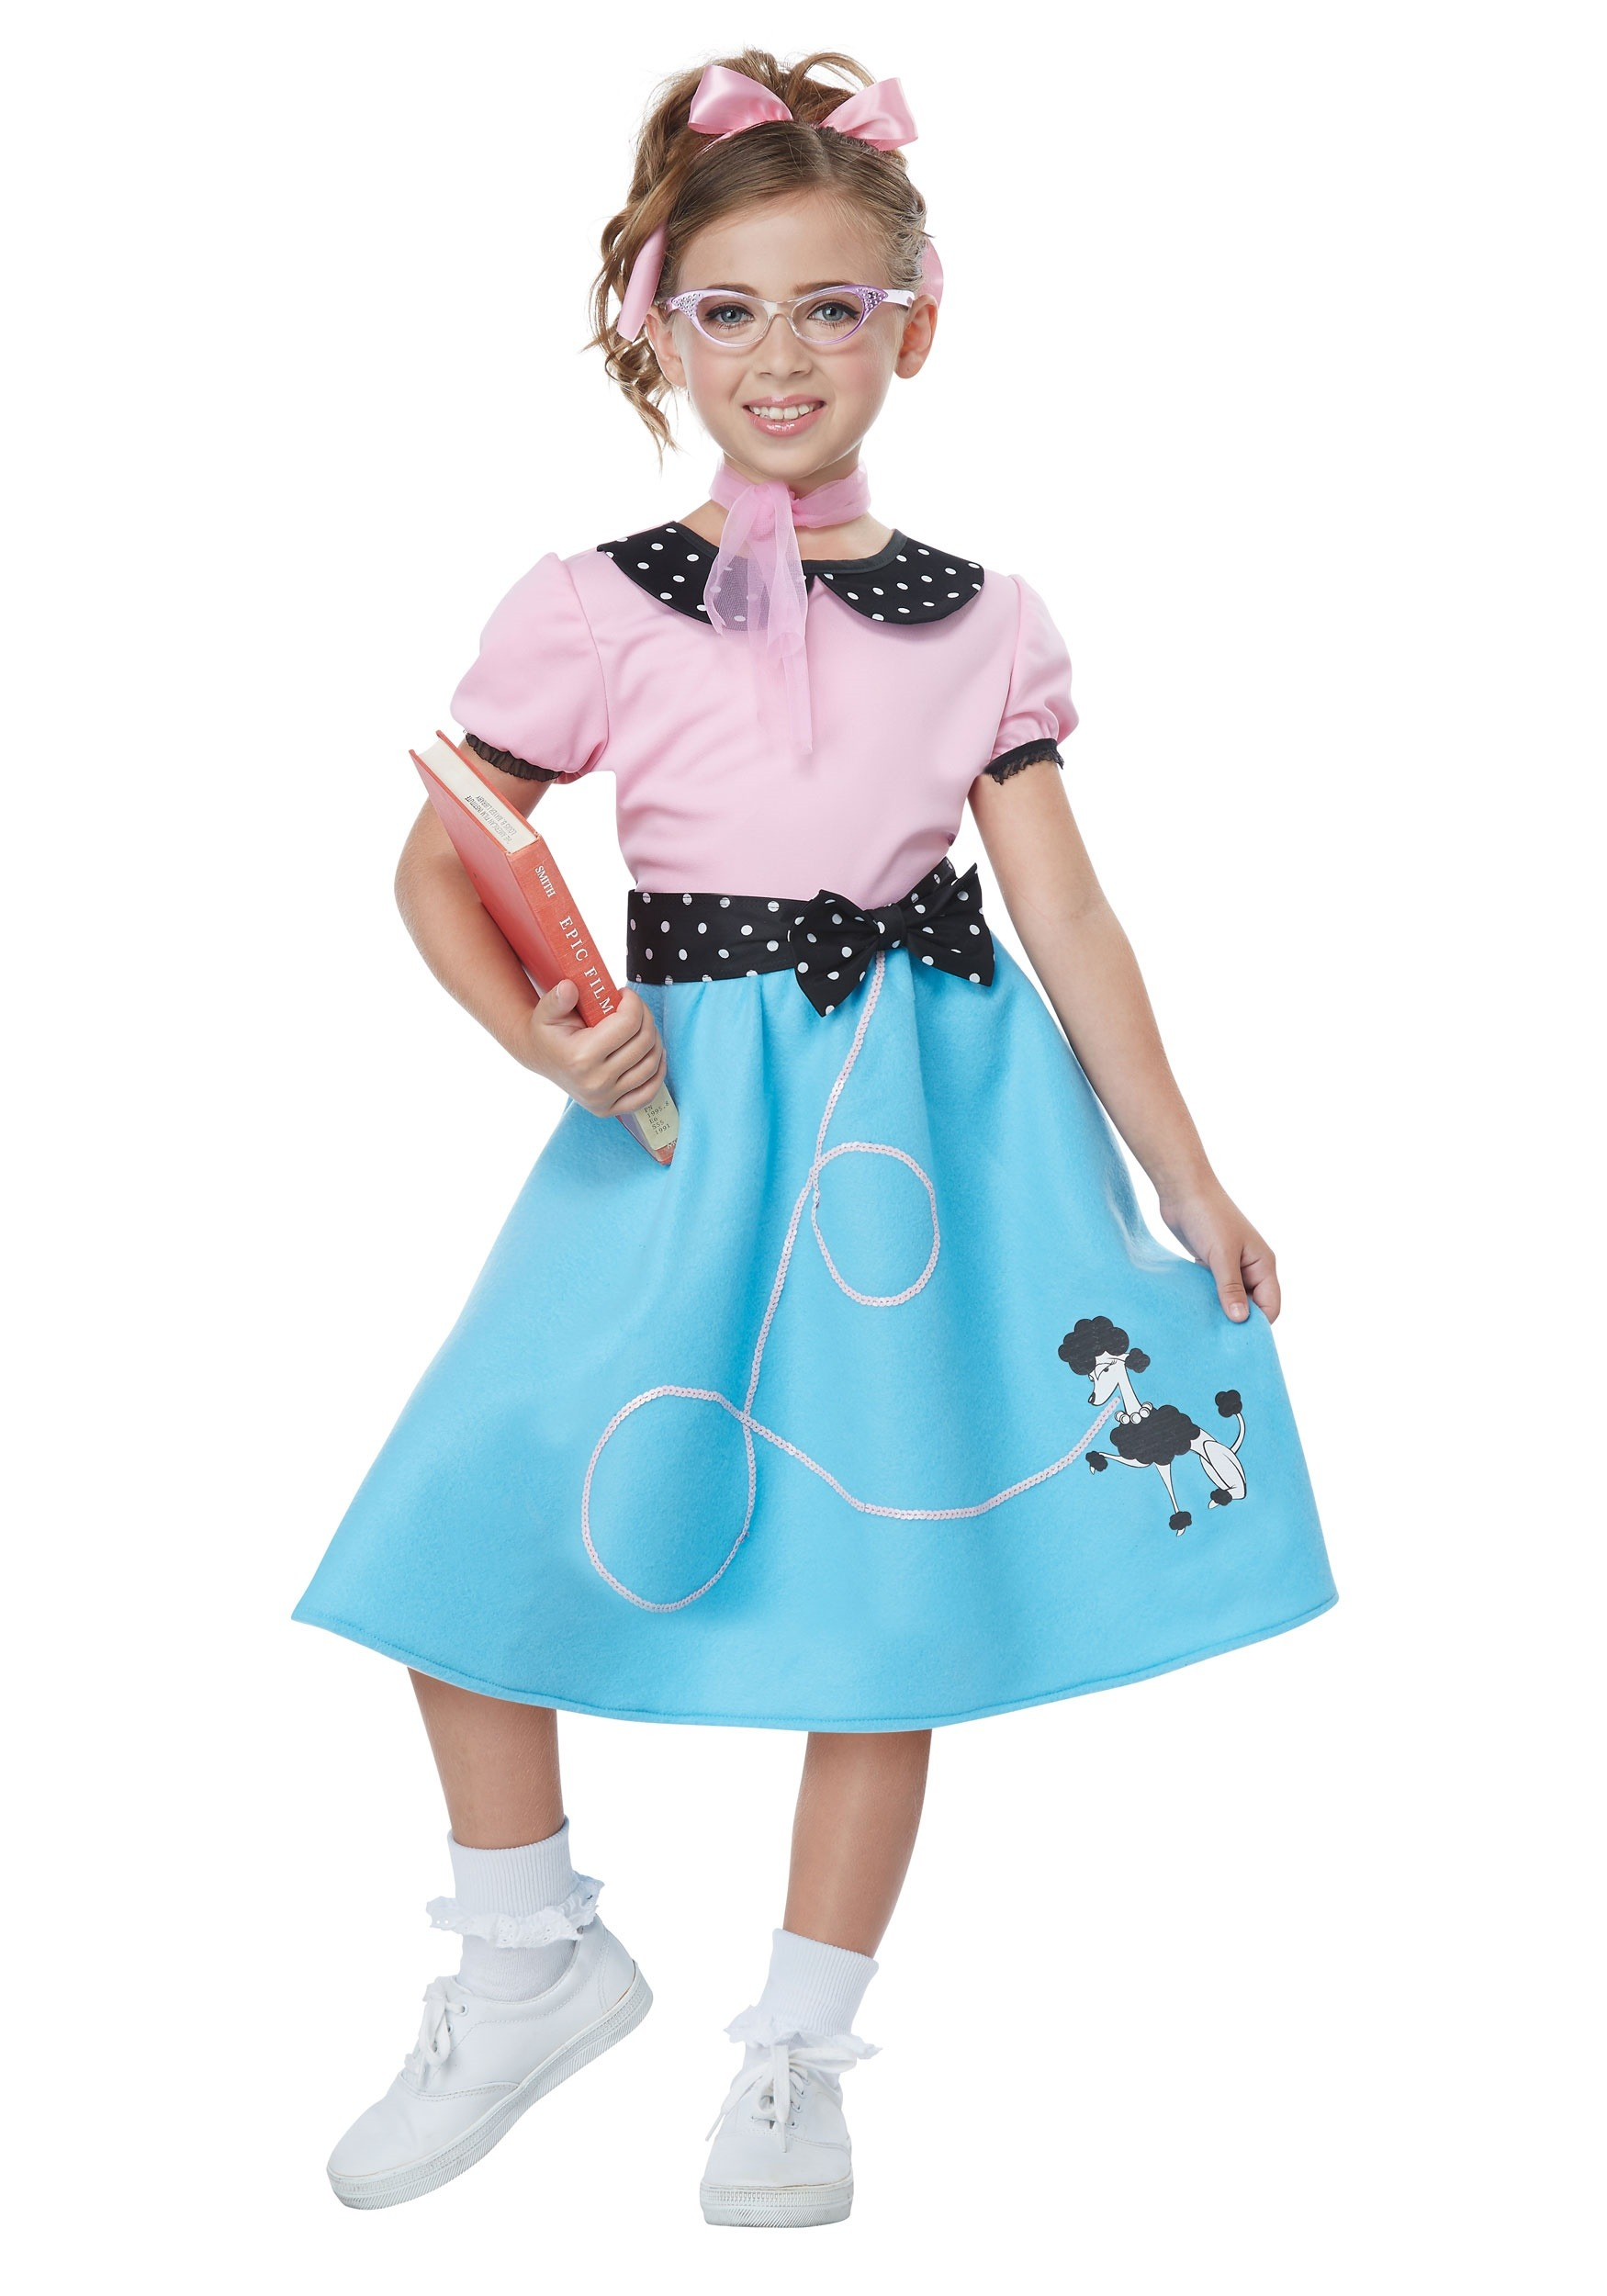 32f4d39e232 Poodle Skirts - 50 s Fashion - HalloweenCostumes.com